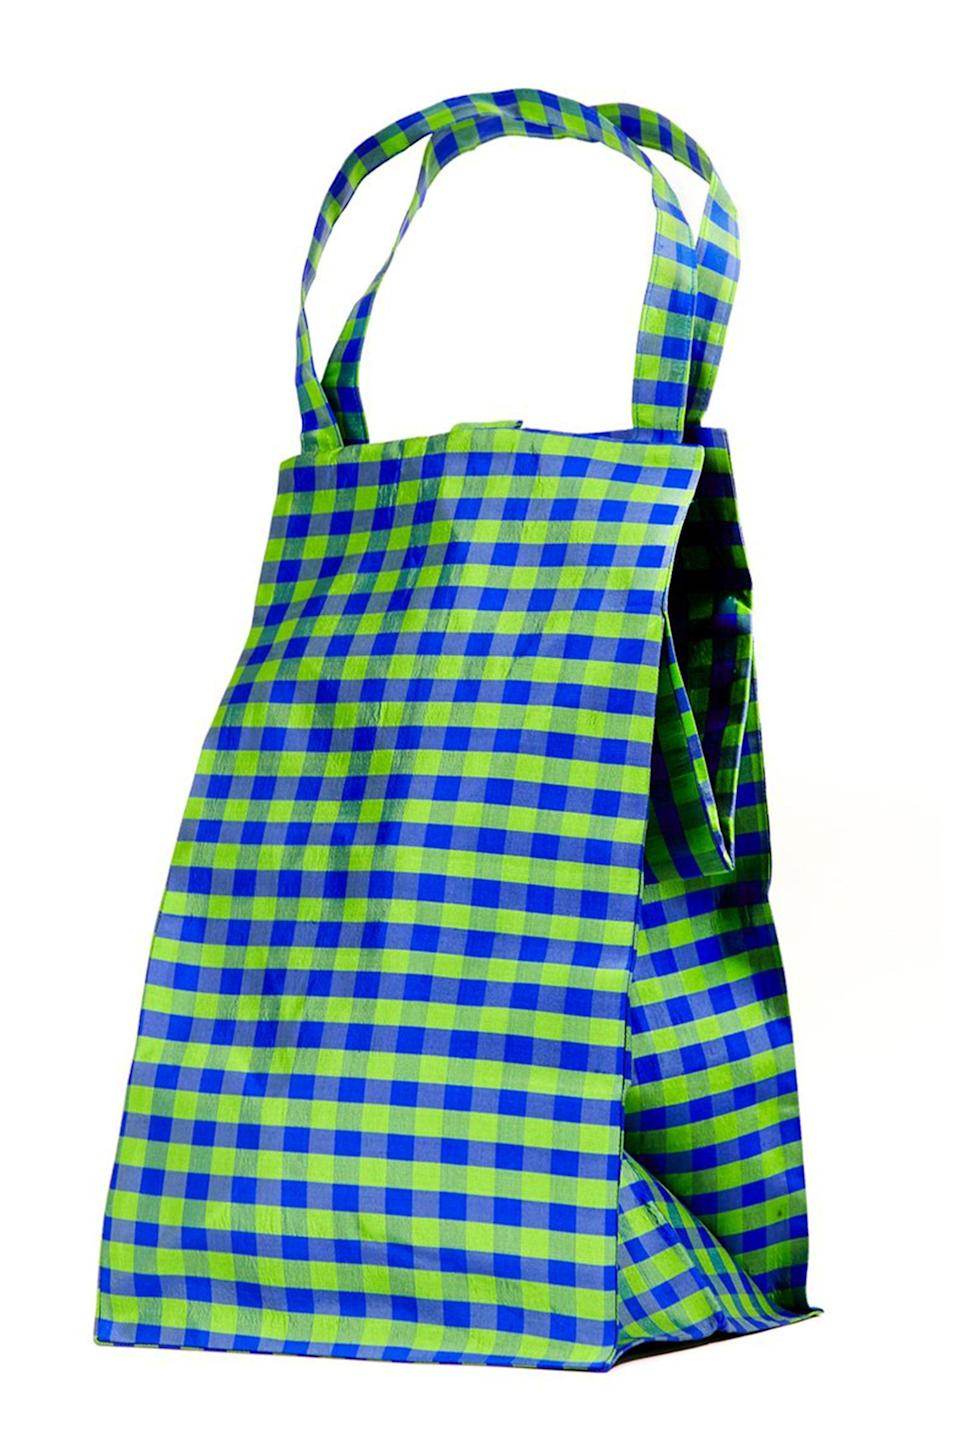 """<p><strong>COA-NYC</strong></p><p>coa-nyc.com</p><p><strong>$235.00</strong></p><p><a href=""""https://coa-nyc.com/collections/all/products/gingham-lime-blue-everyday-bag"""" rel=""""nofollow noopener"""" target=""""_blank"""" data-ylk=""""slk:Shop Now"""" class=""""link rapid-noclick-resp"""">Shop Now</a></p><p>COA-NYC, short for Coming of Age, stays true to its name as the brand incorporates playful colors and practical designs that were inspired by the designer Luri's childhood in Miami. This cute Everyday Bag reminds us of school lunch bags, upgraded in silk gingham sourced from the garment district in NYC.</p>"""